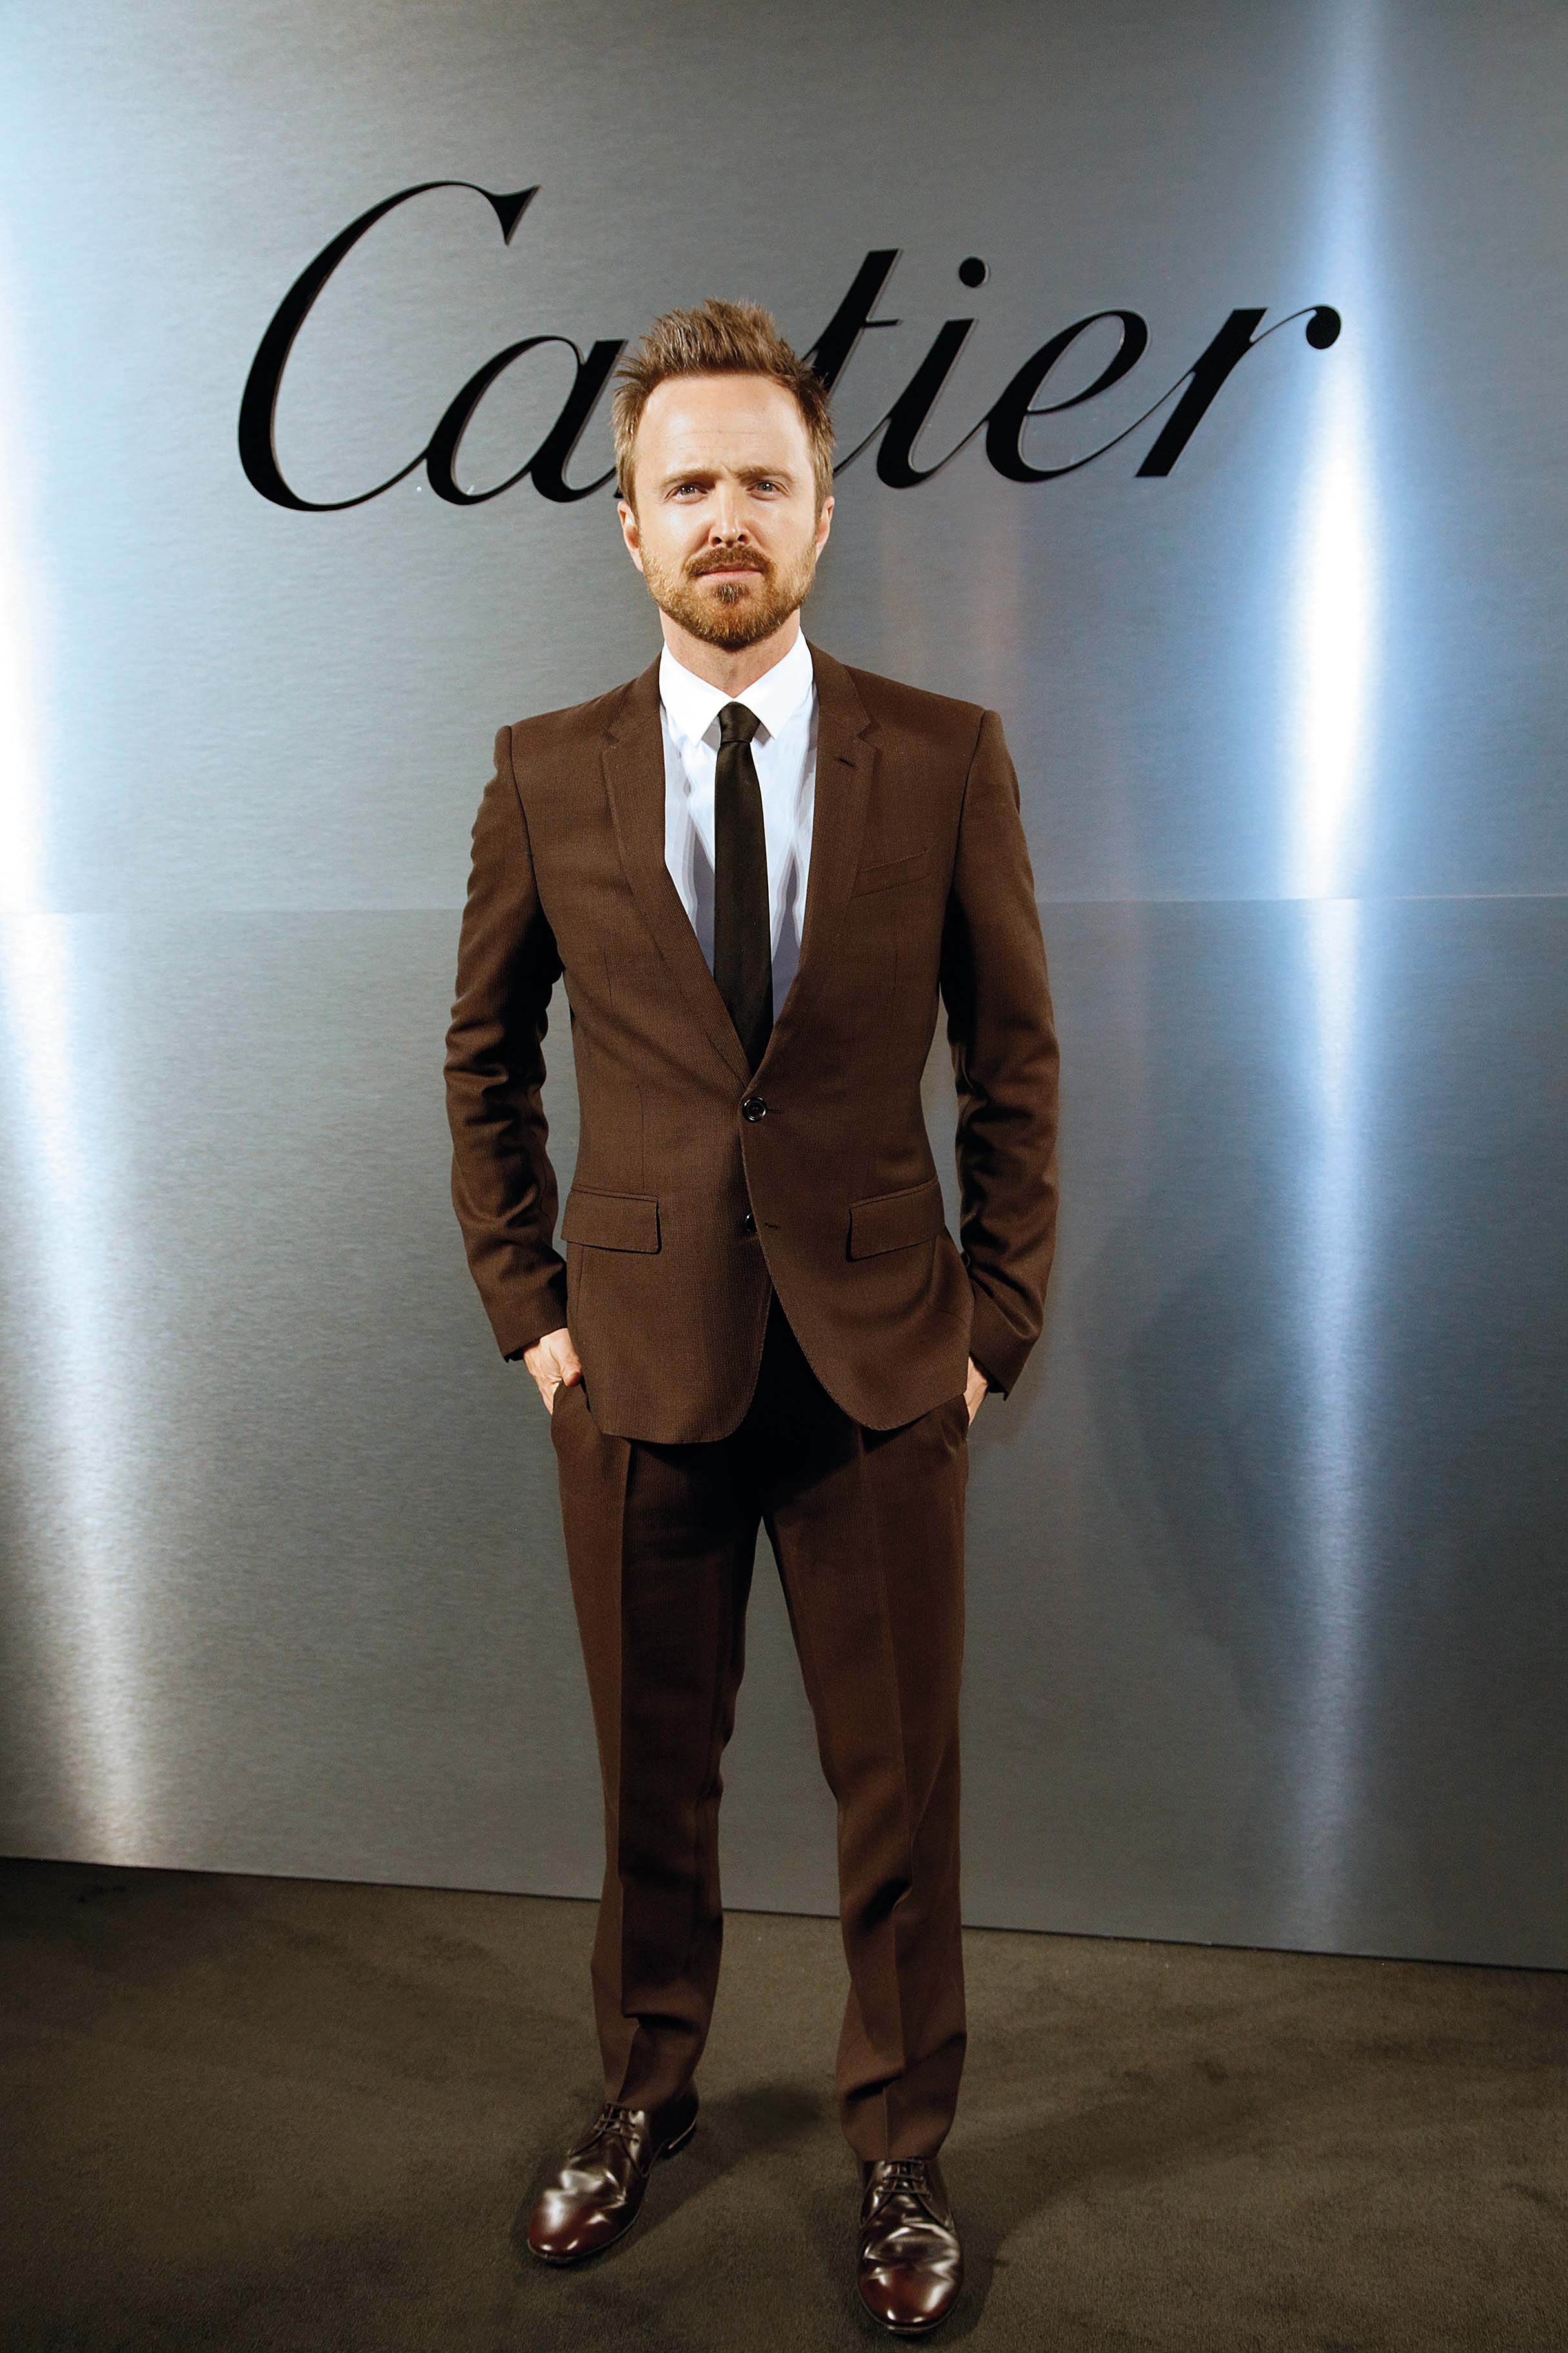 SAN FRANCISCO, CA - APRIL 05:  Aaron Paul attends Cartier celebration of the launch of Santos de Cartier Watch at Pier 48 on April 5, 2018 in San Francisco, California.  (Photo by Kimberly White/Getty Images for Cartier)